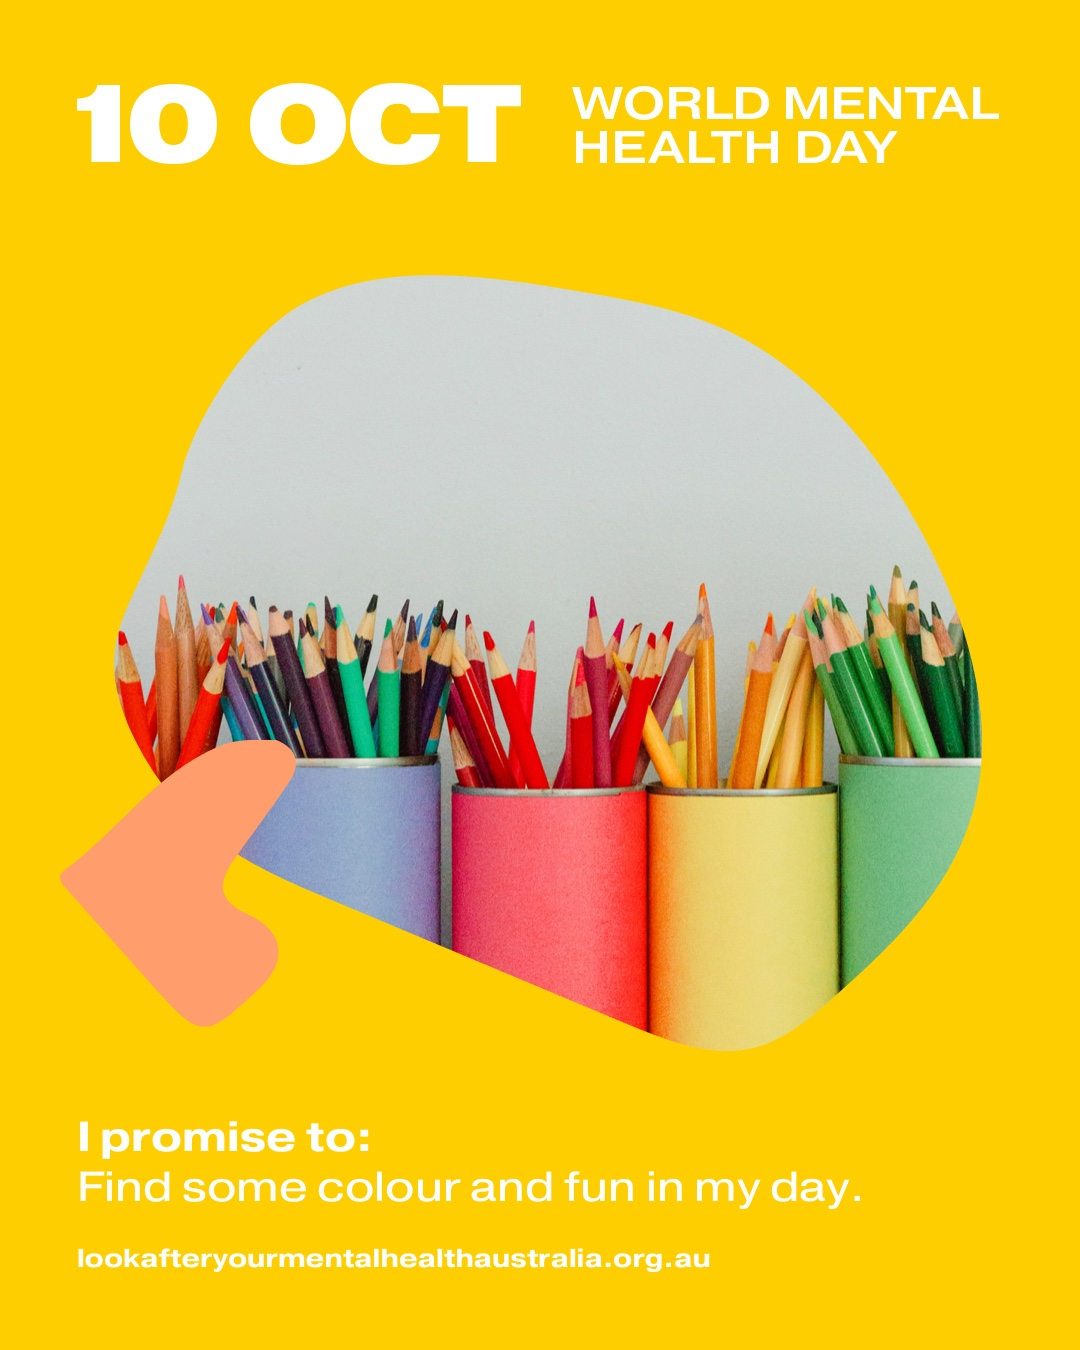 I promise to: Find some colour and fun in my day.